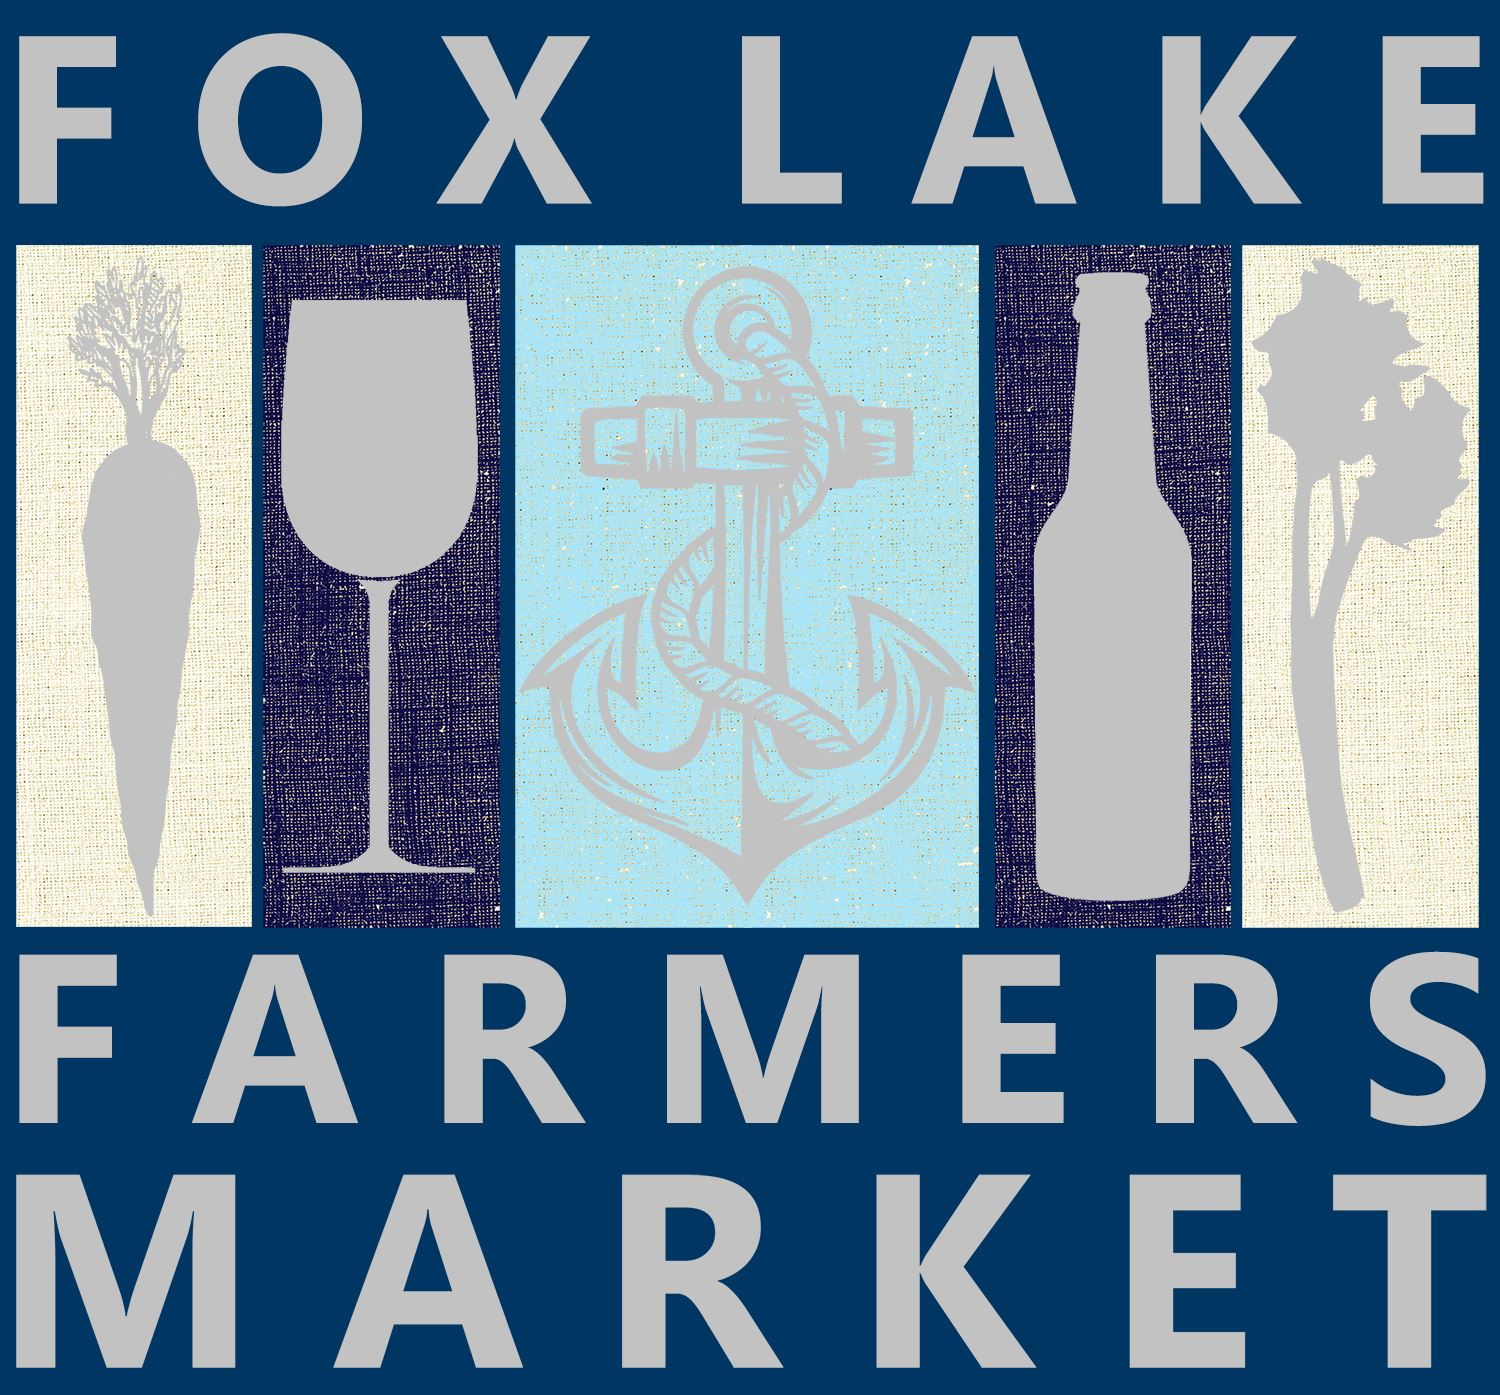 FARMERS MARKET LOGO FINAL COLORED BACKGROUND